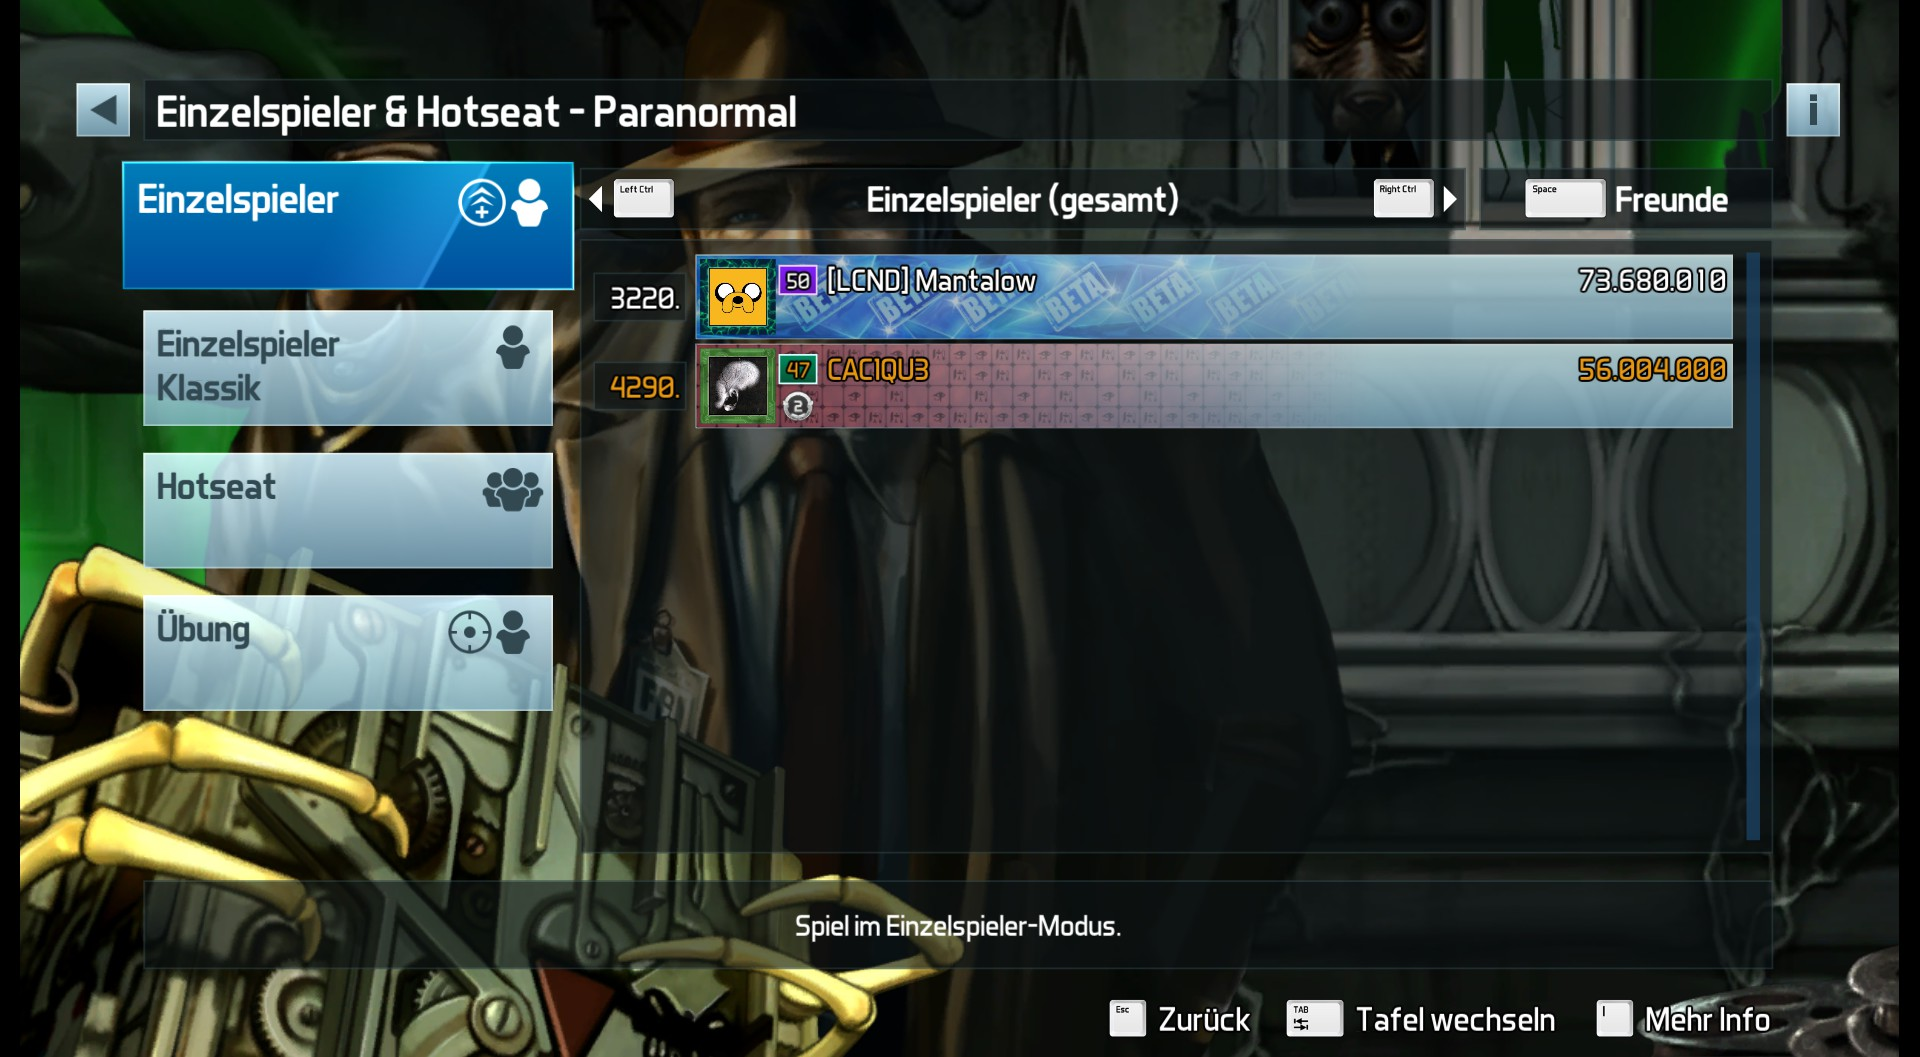 Pinball FX3: Paranormal 56,004,000 points